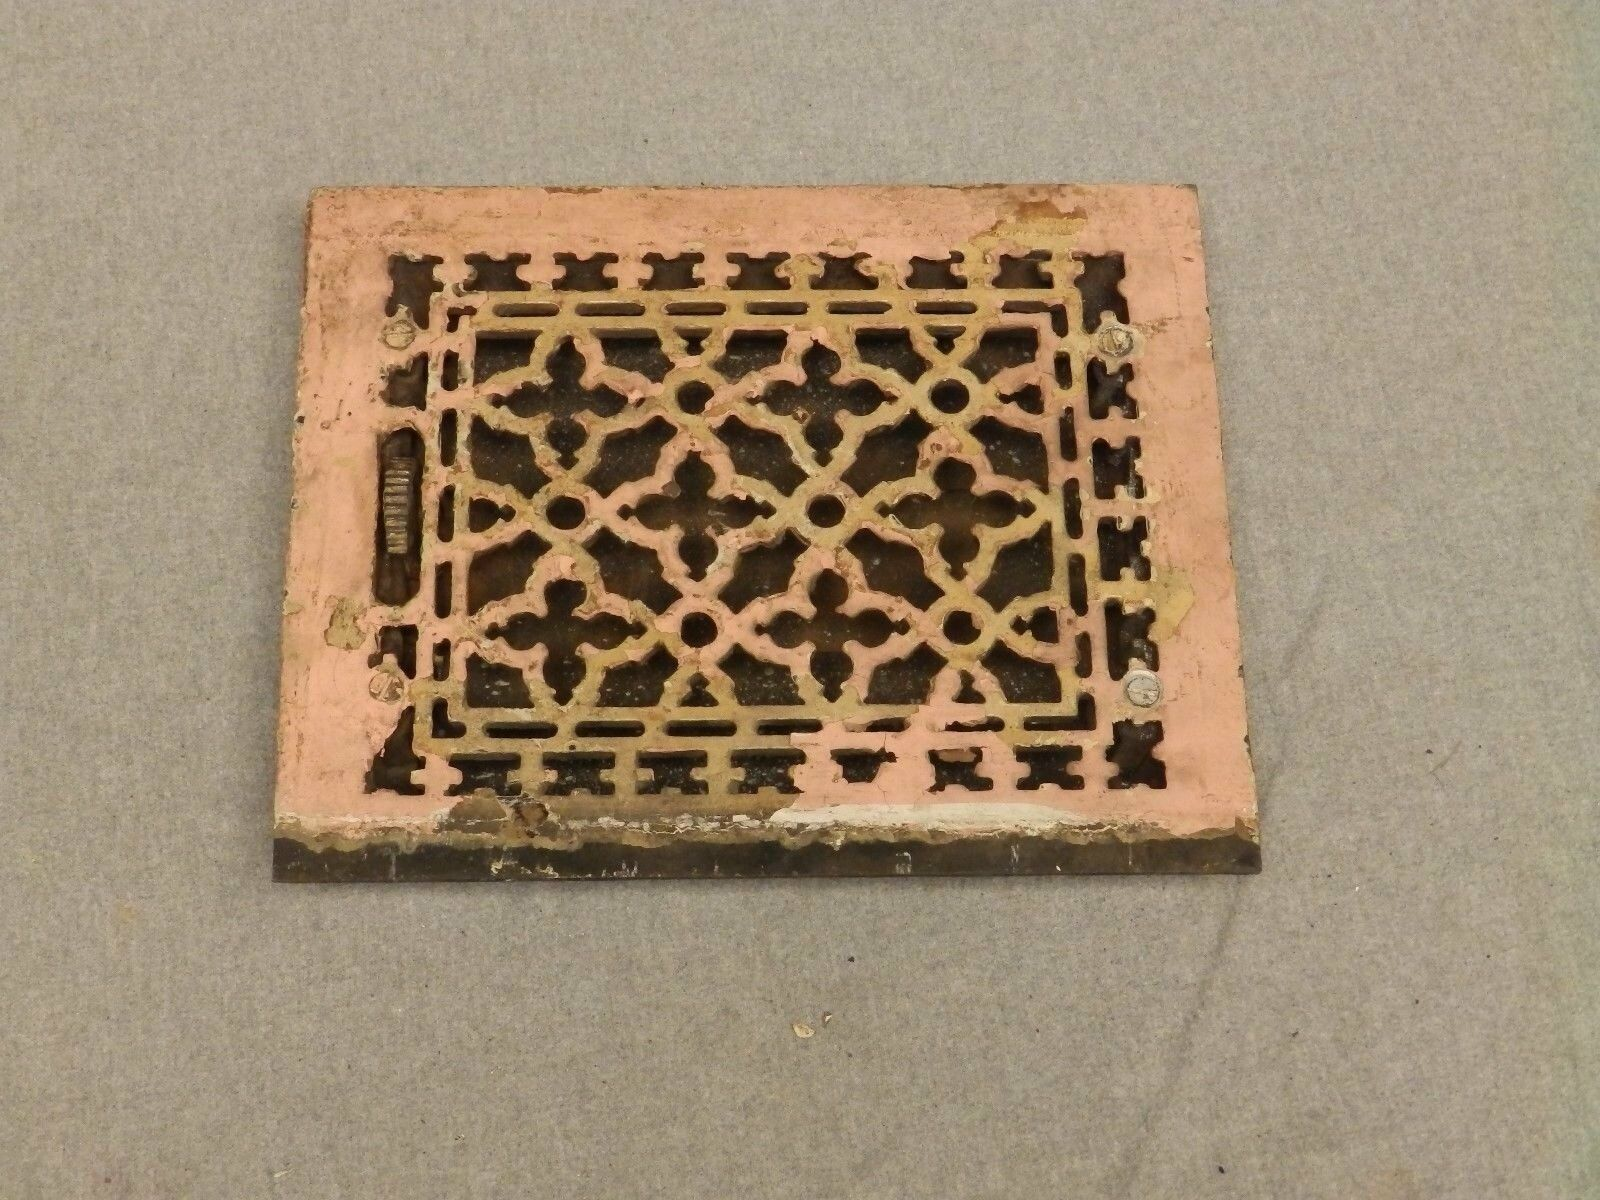 Antique Gothic Cast Iron Heat Grate Register Vent Old Vintage Hardware 630-16